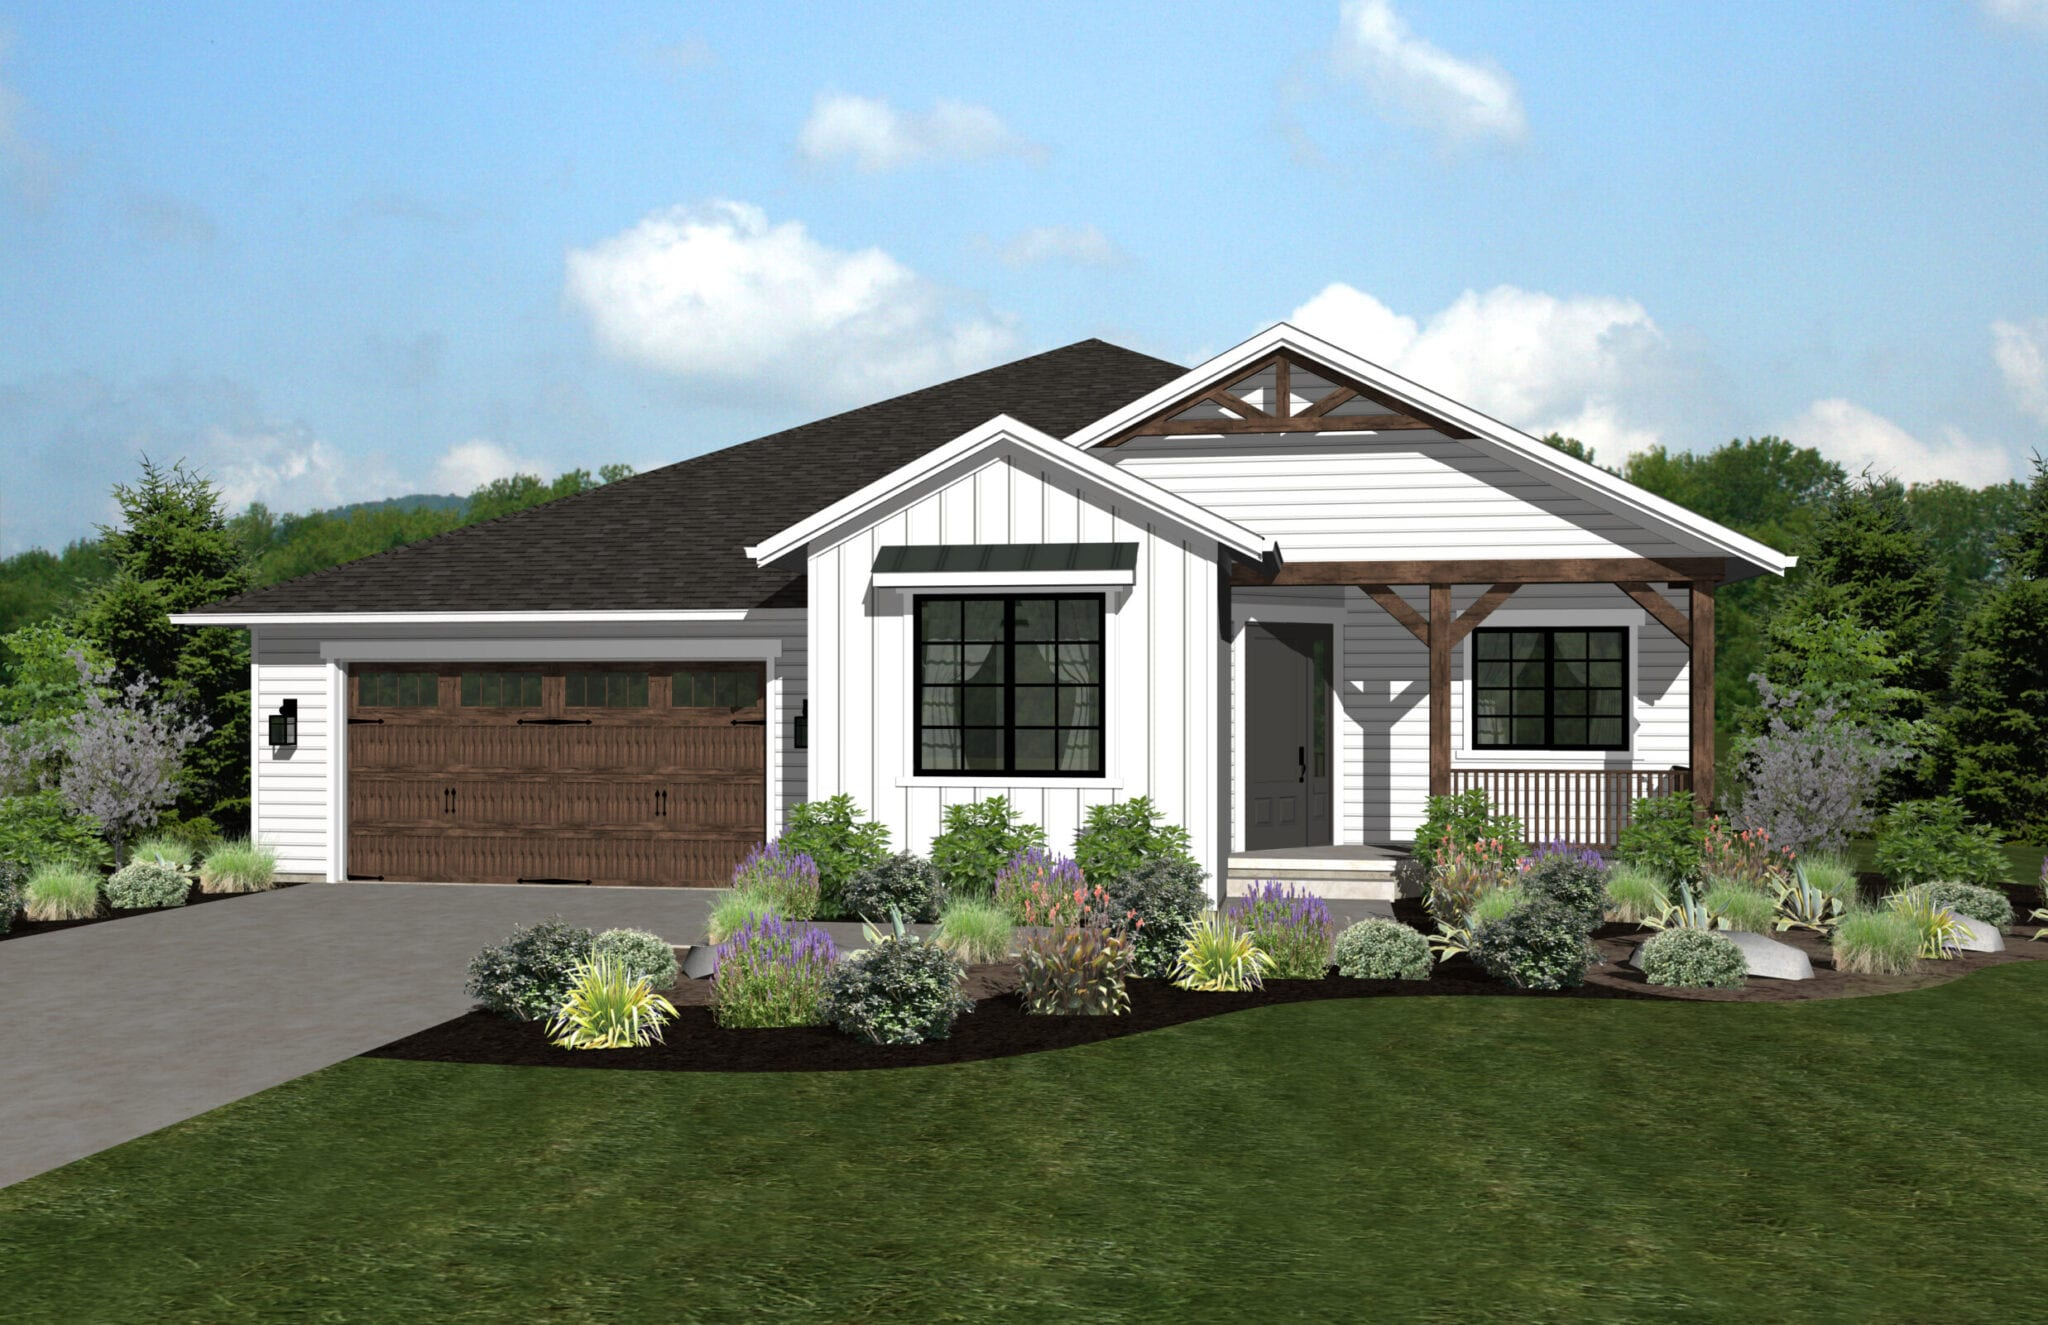 FRONT RENDERING 3675 Wyndemere